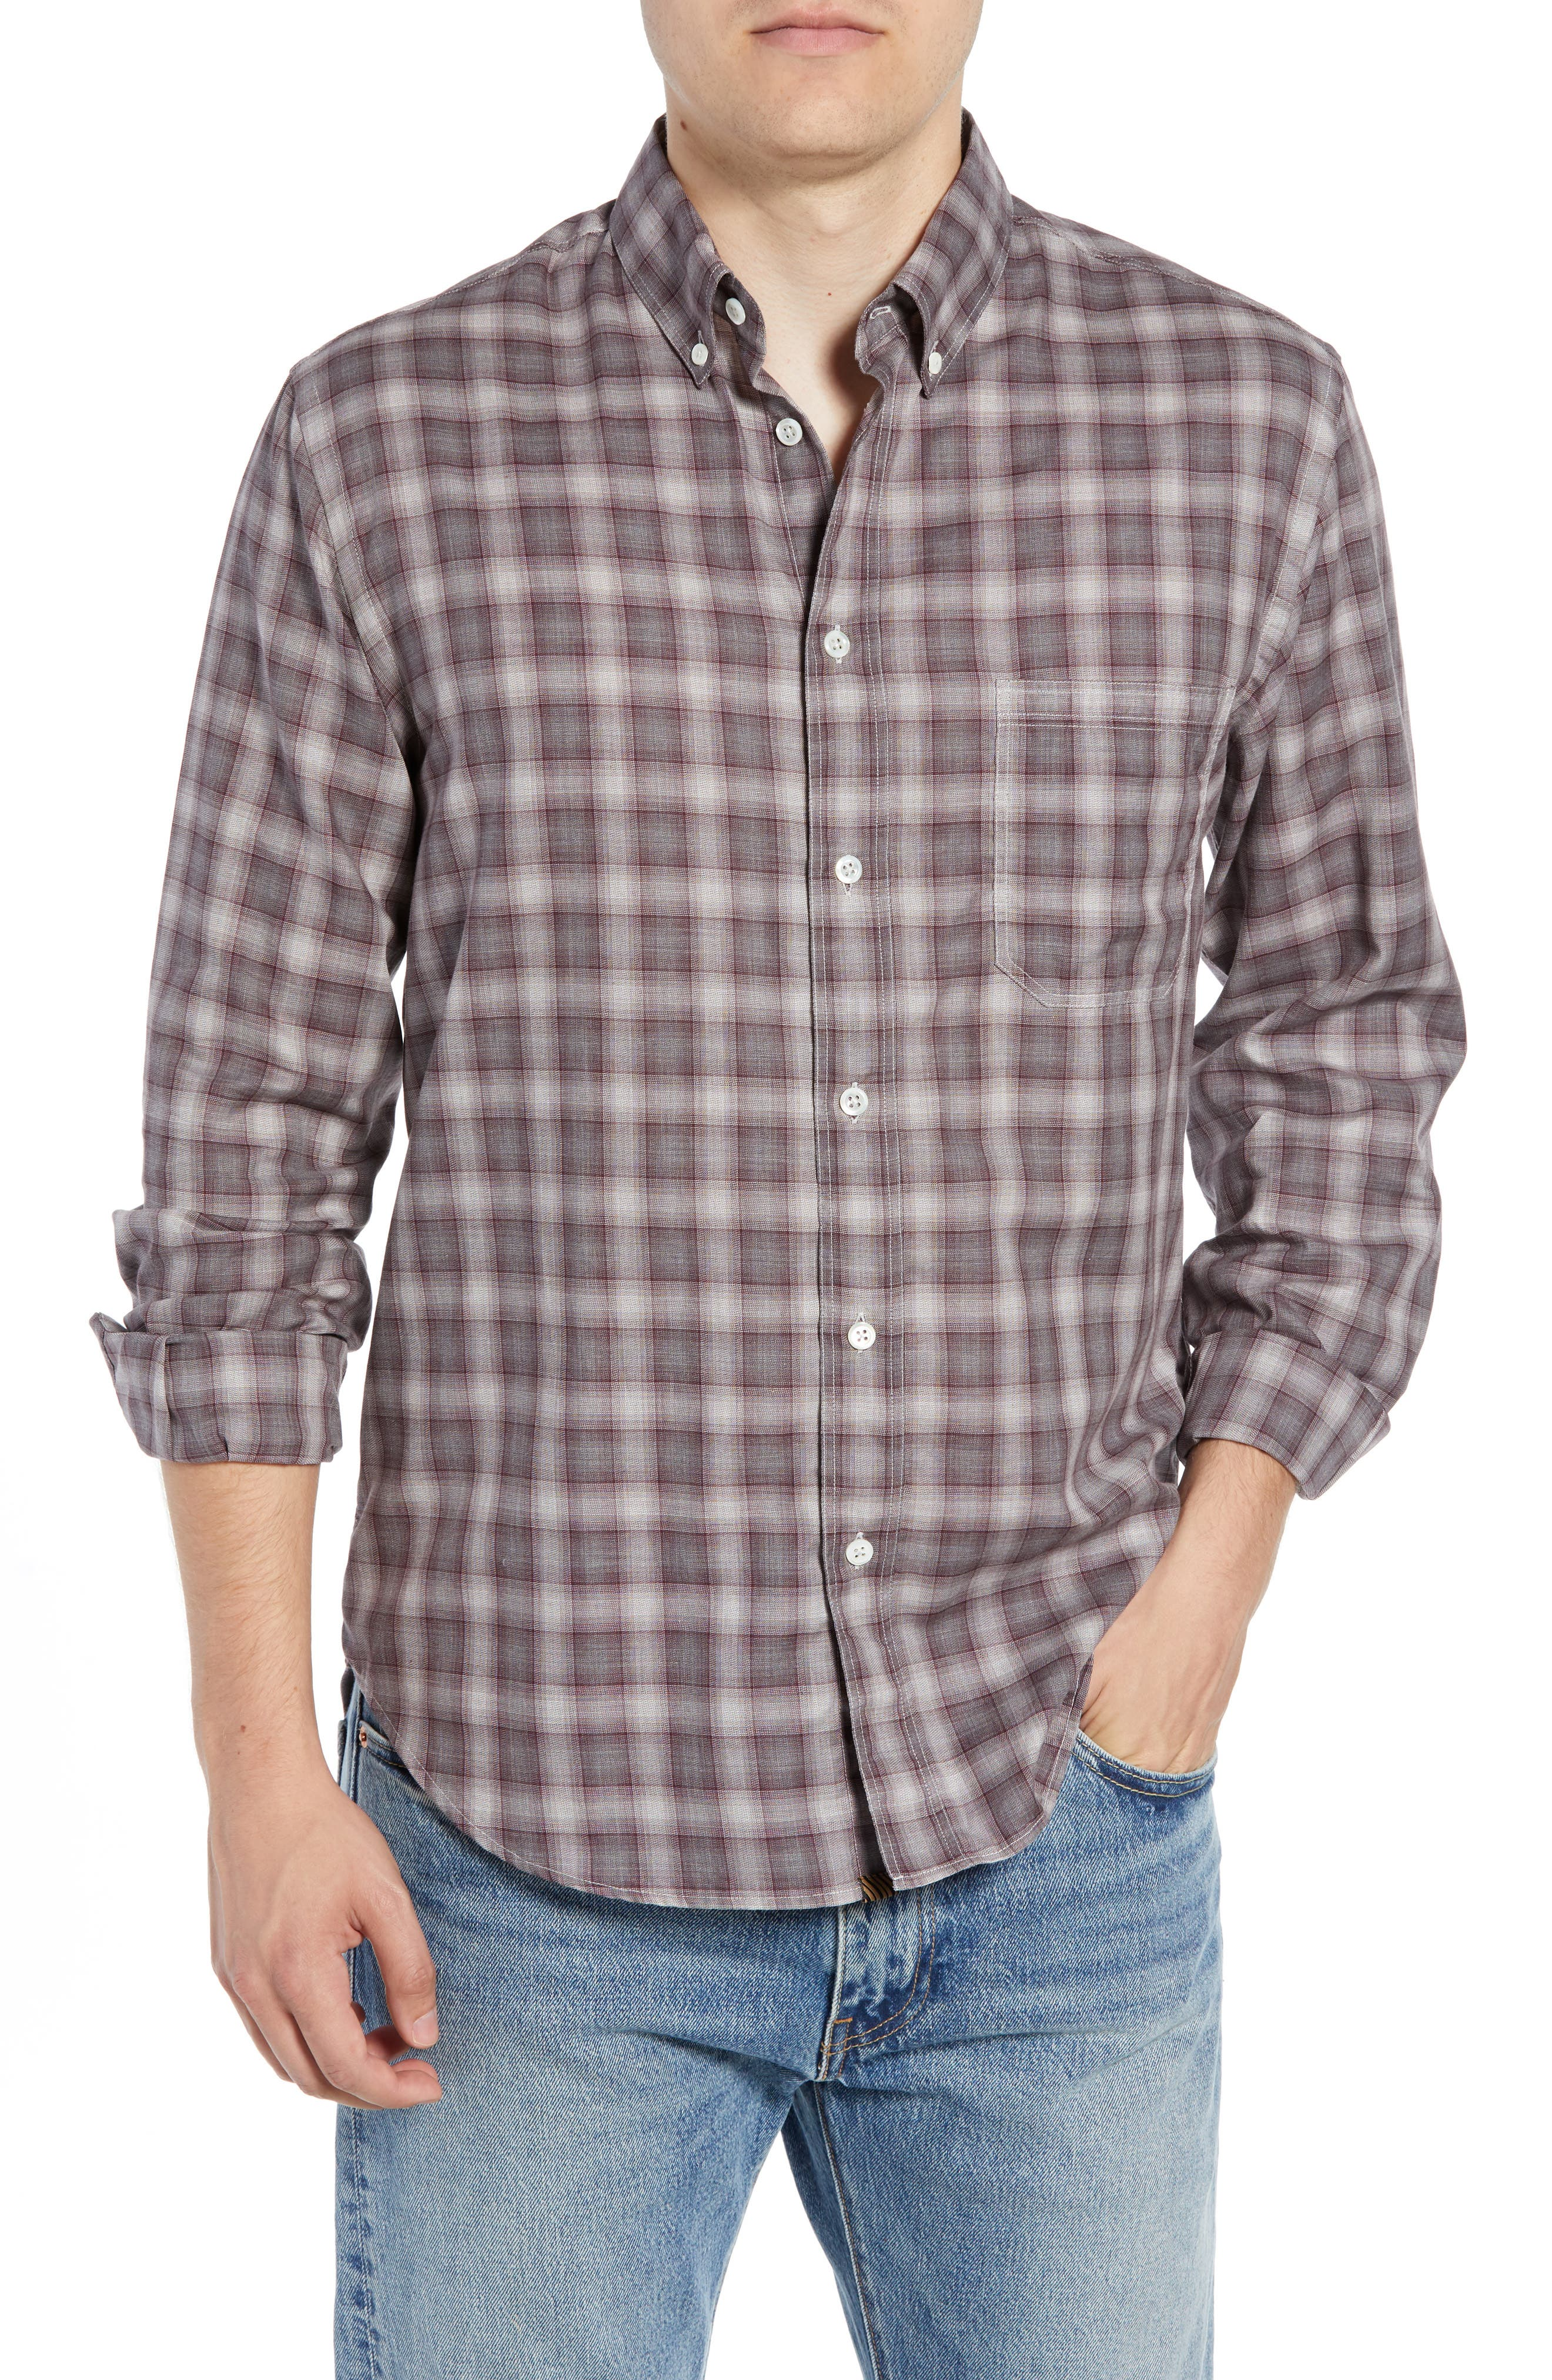 Tuscumbia Regular Fit Plaid Sport Shirt,                             Main thumbnail 1, color,                             930